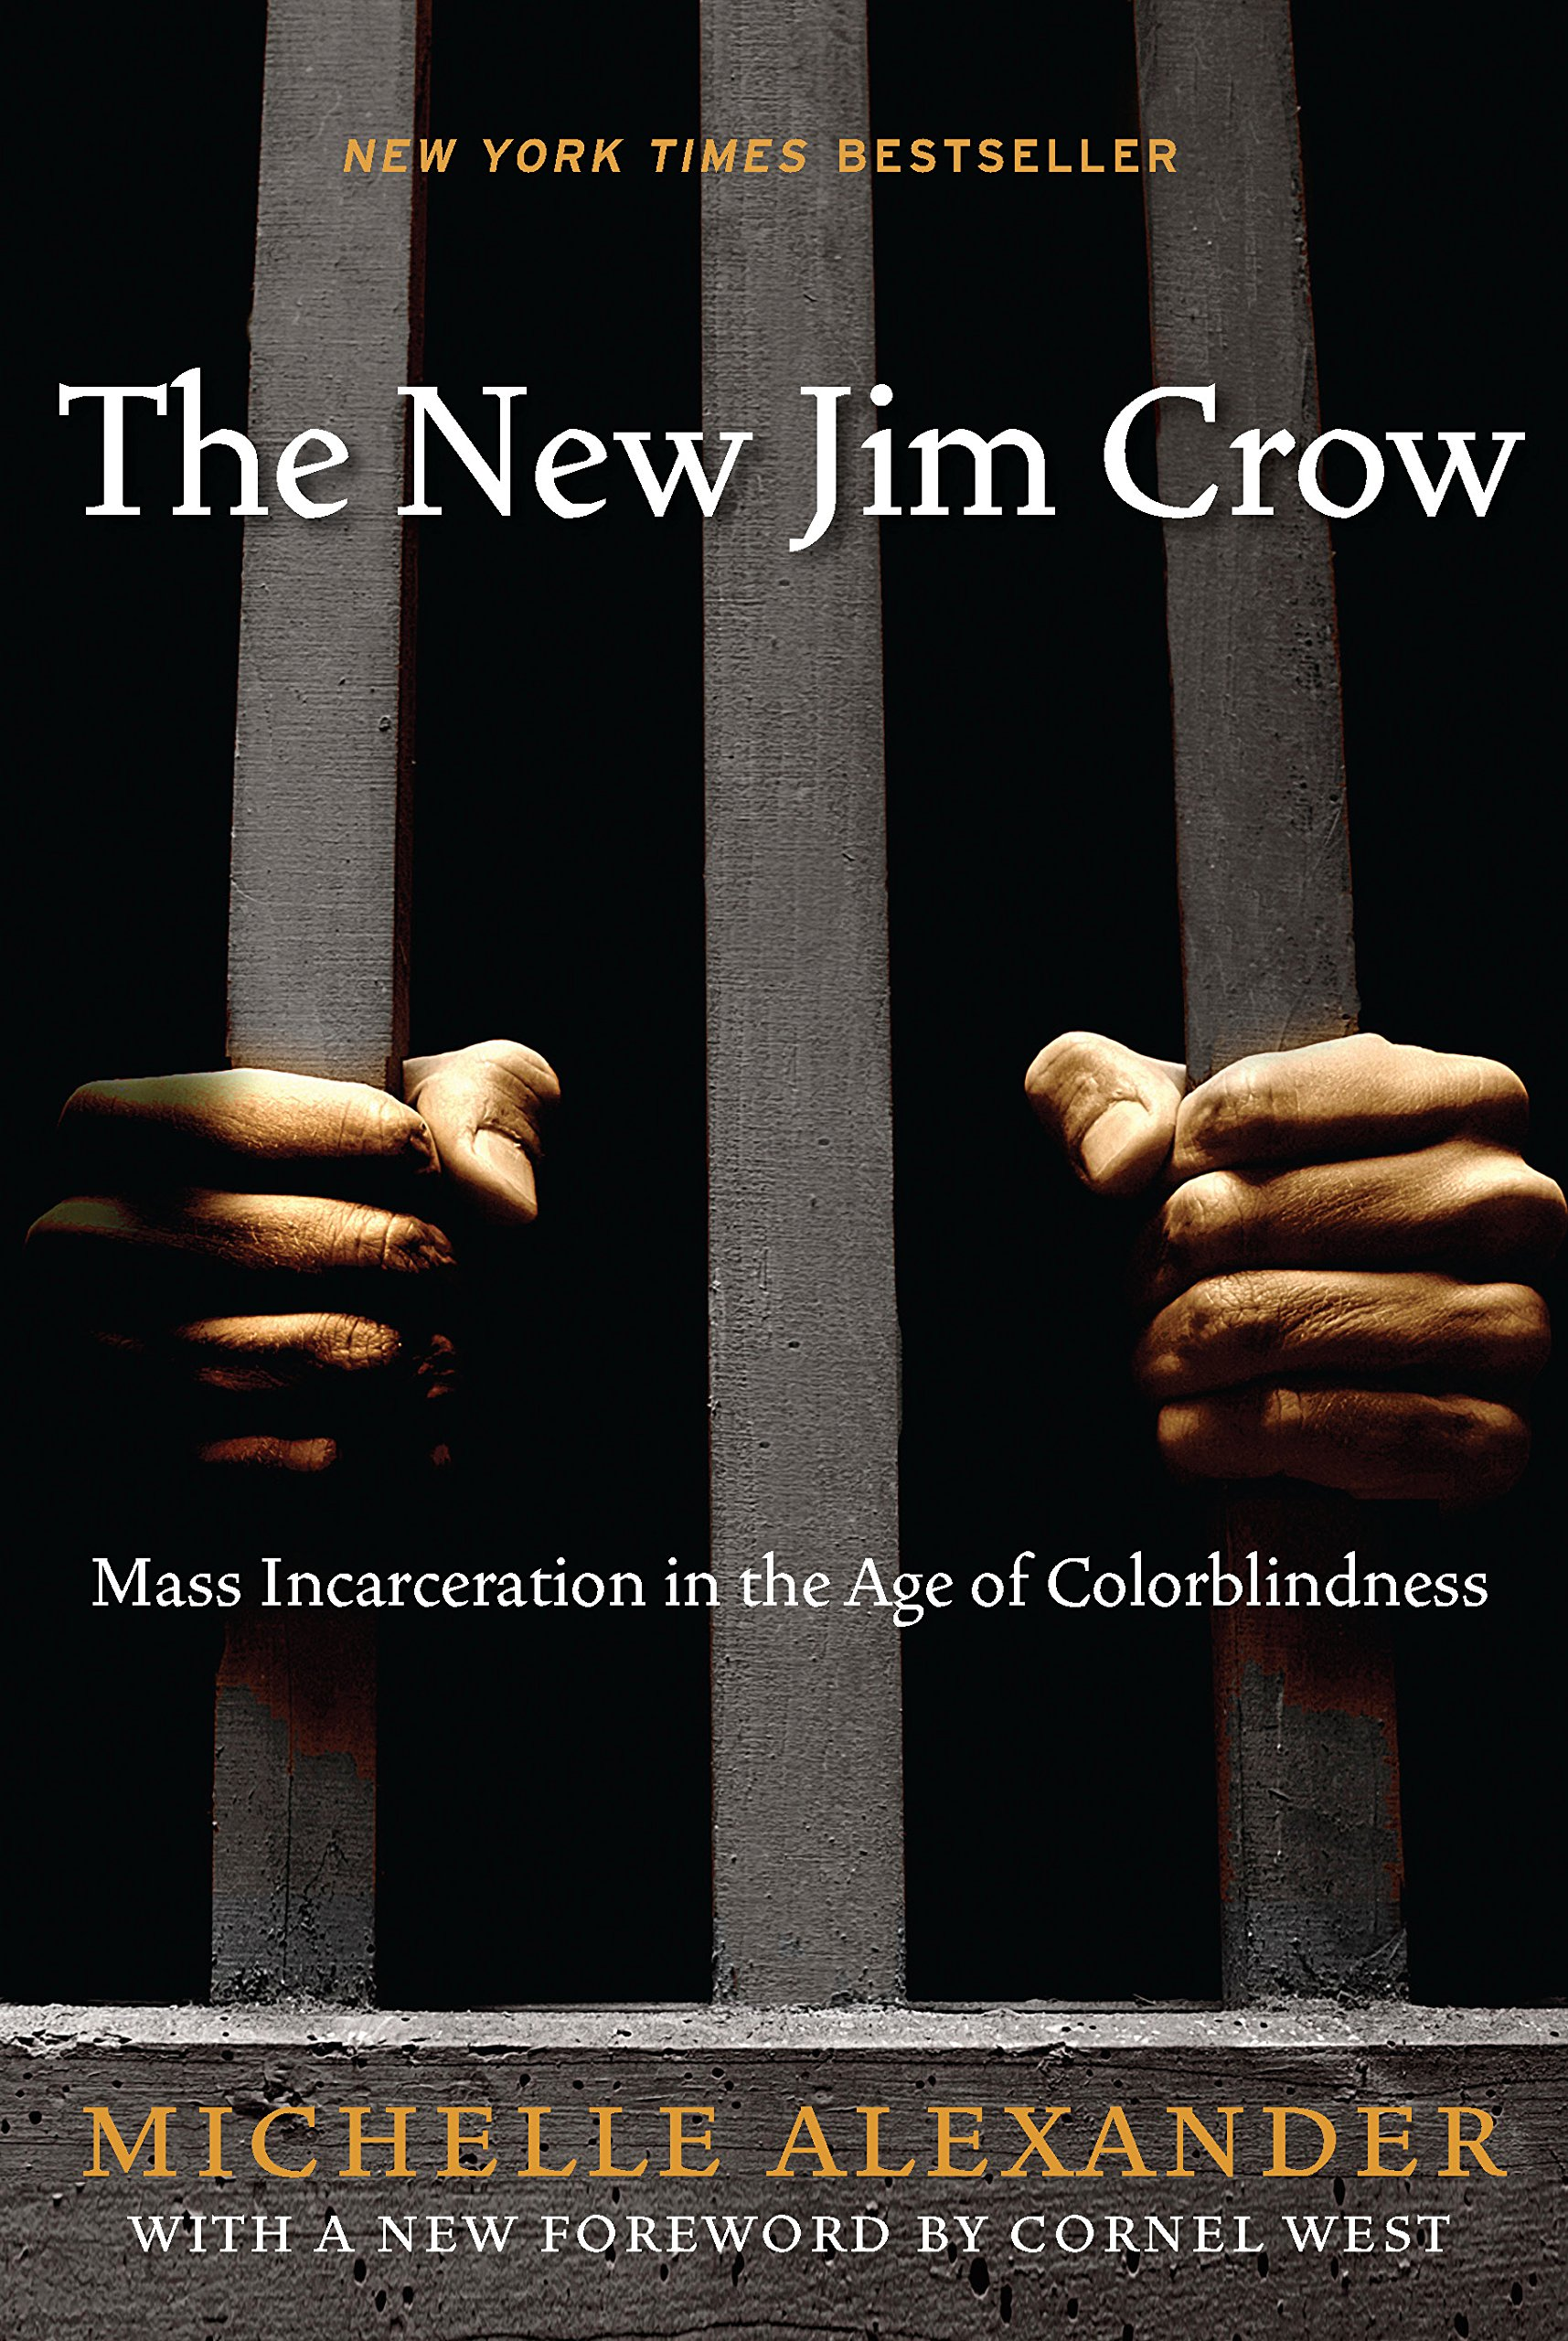 The New Jim Crow: Mass Incarceration in the Age of Colorblindness   (2010)  By Michelle Alexander